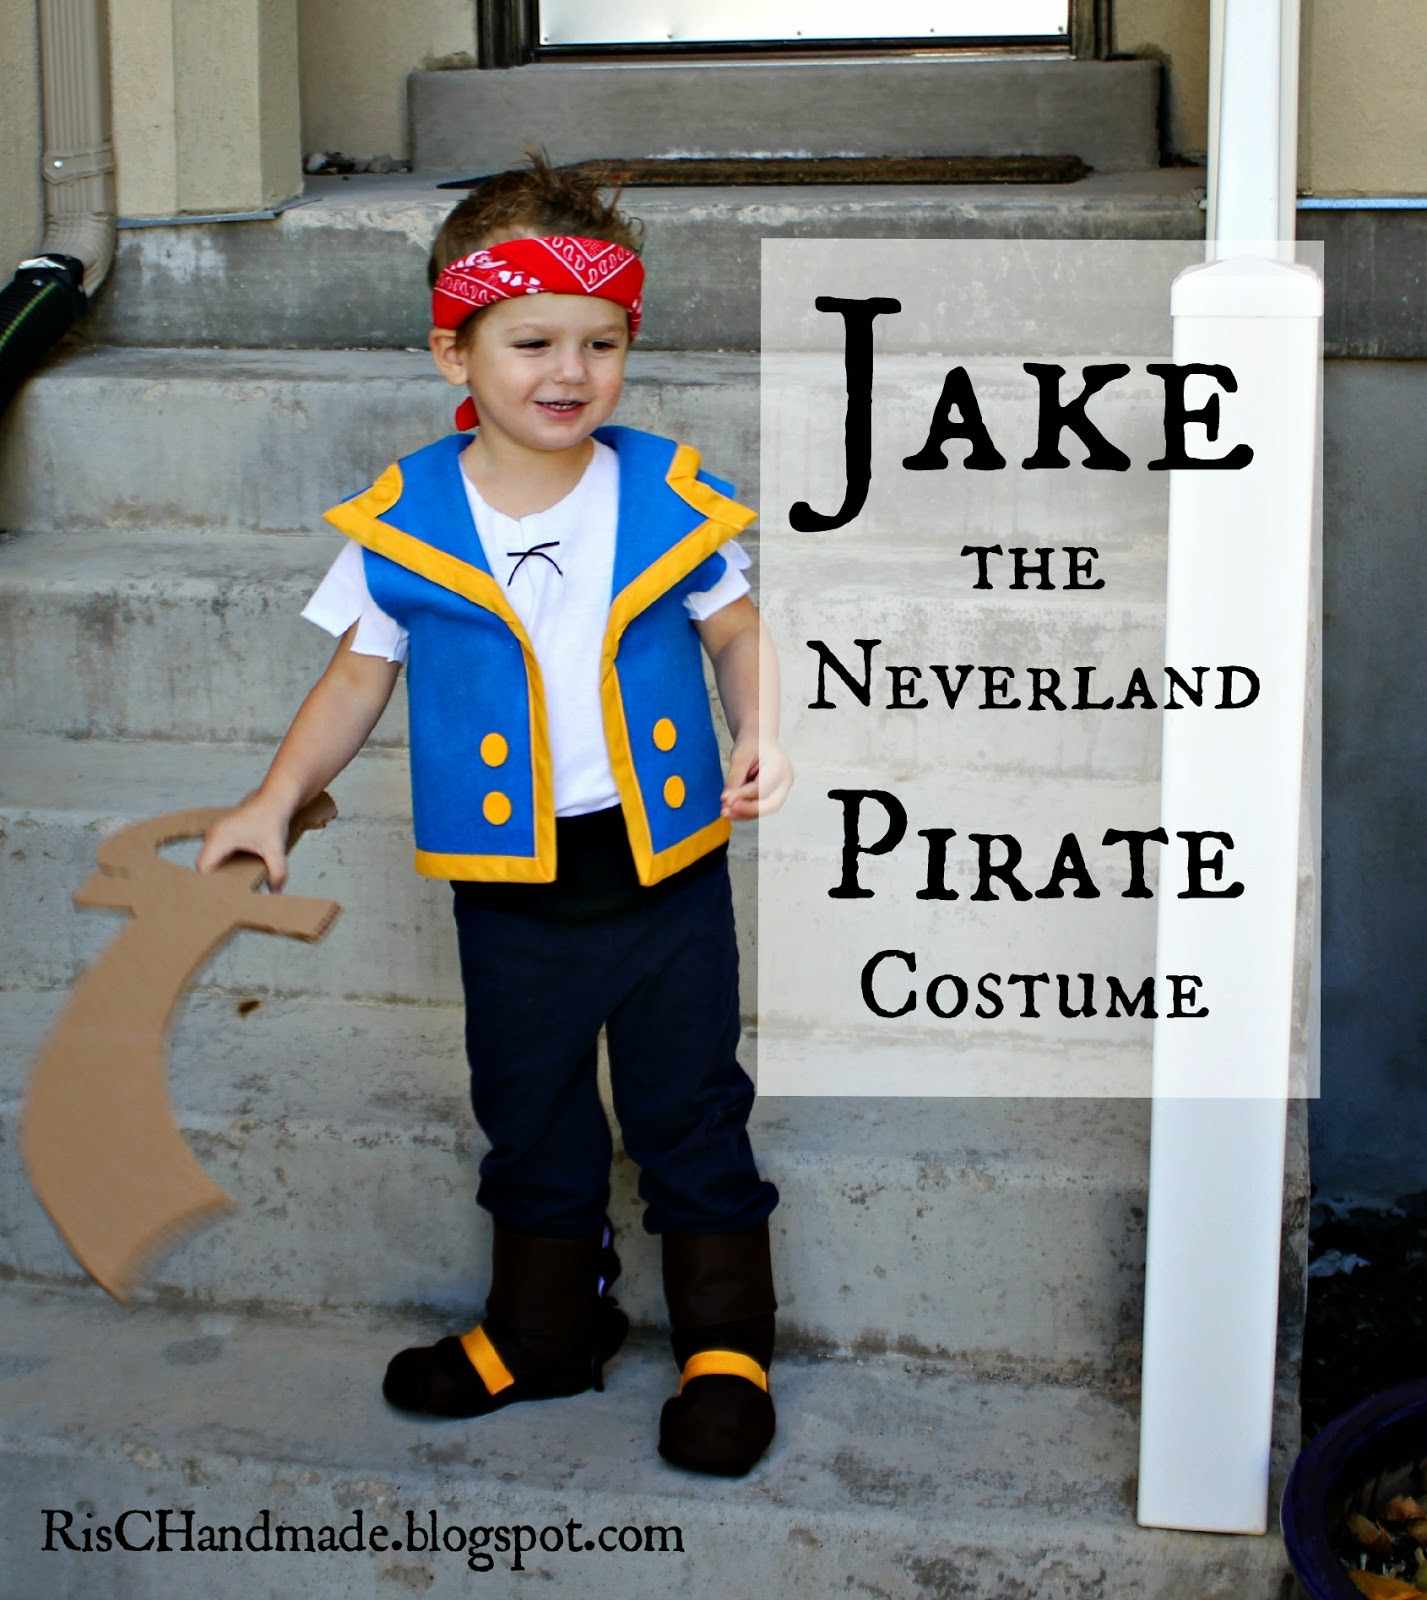 Jake the Neverland Pirate Costume  sc 1 th 238 & RisC Handmade